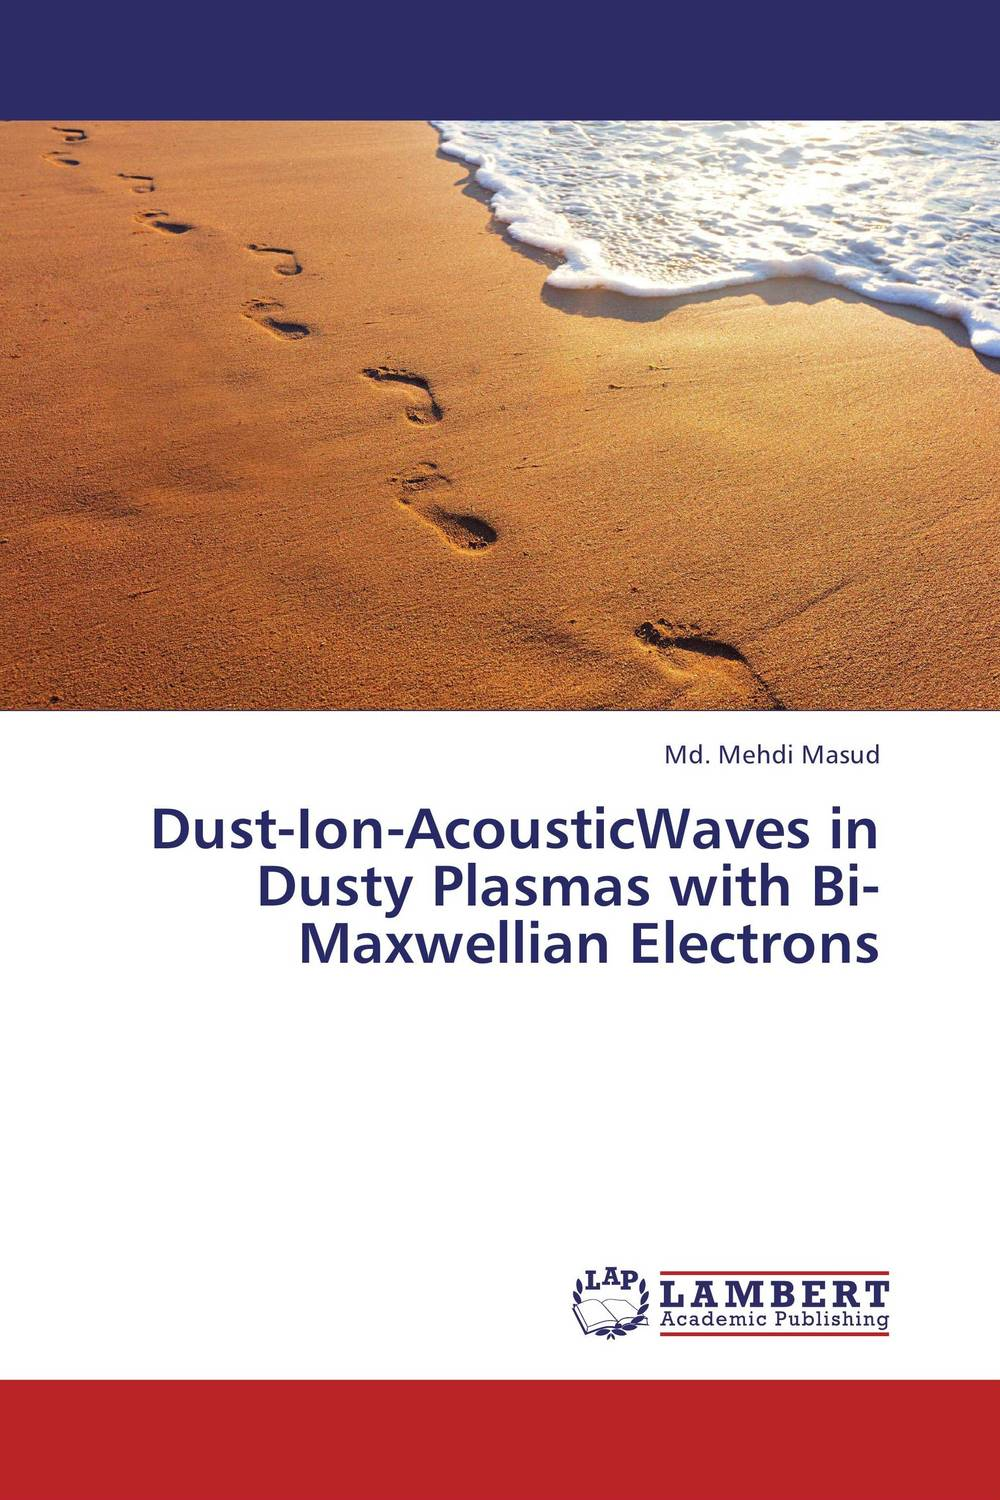 Dust-Ion-AcousticWaves in Dusty Plasmas with Bi-Maxwellian Electrons юбки hauber юбка